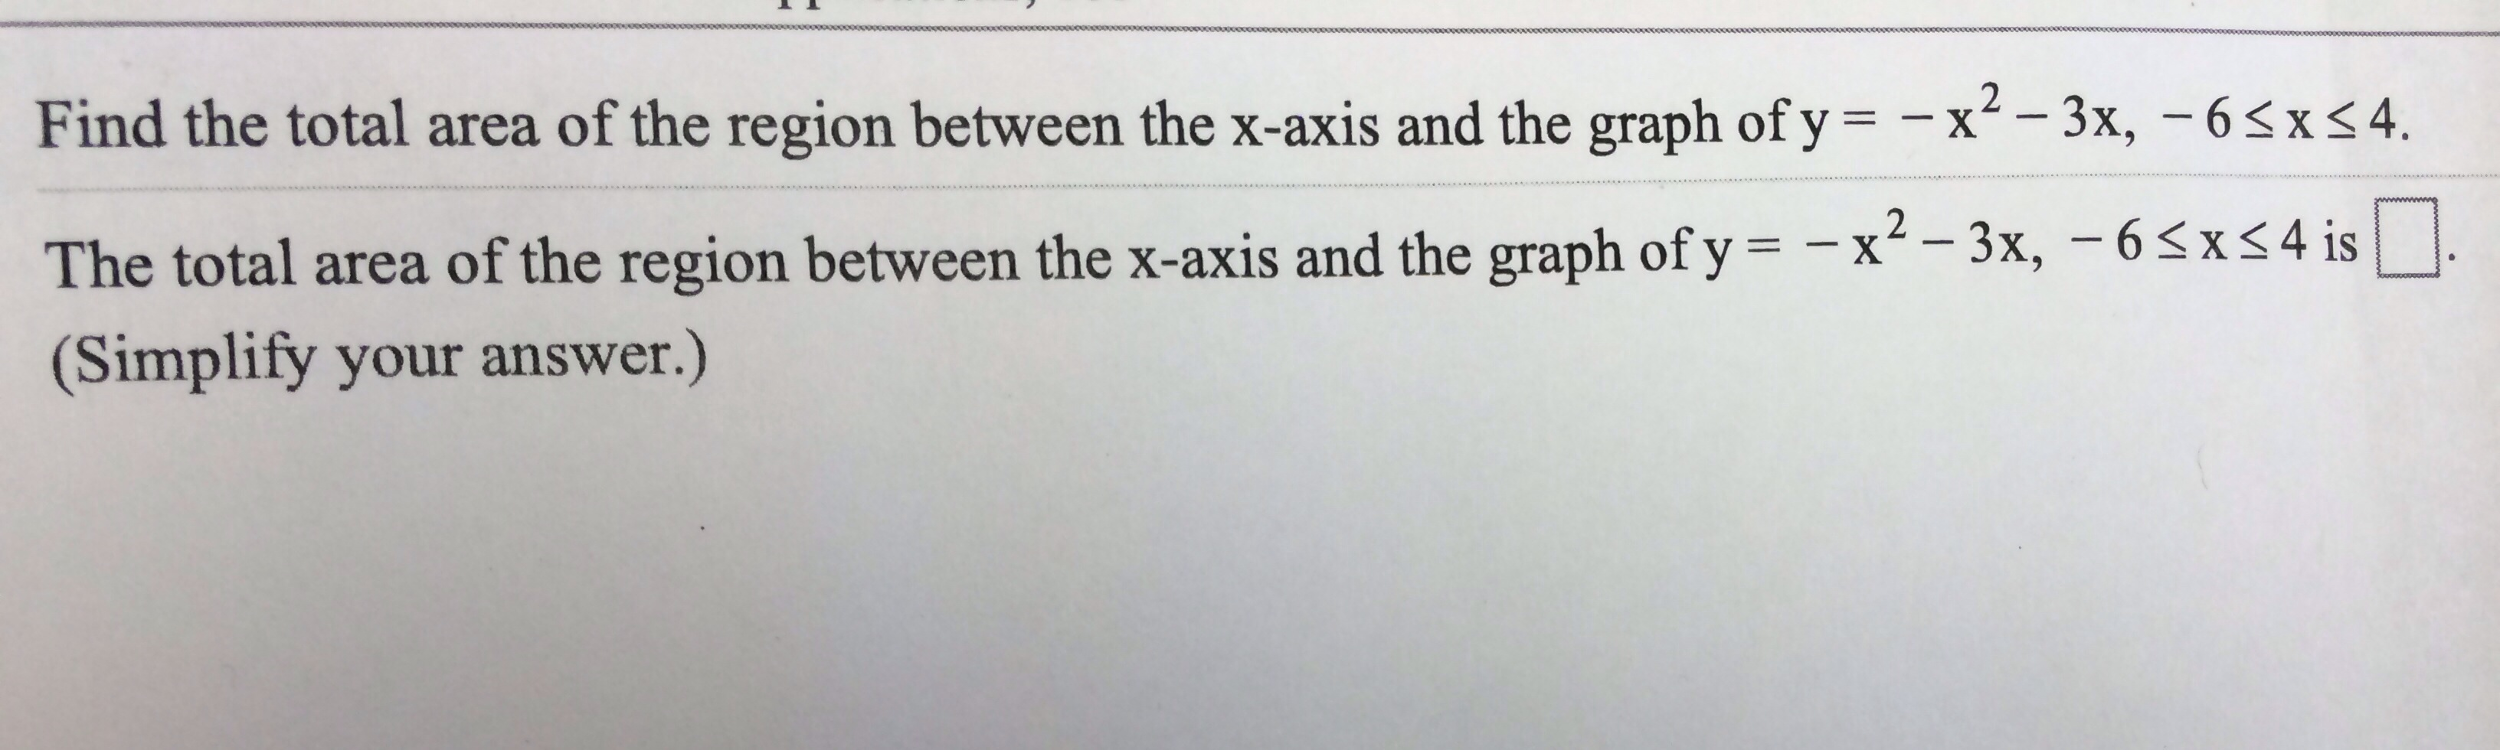 how to find area of region in terms of y